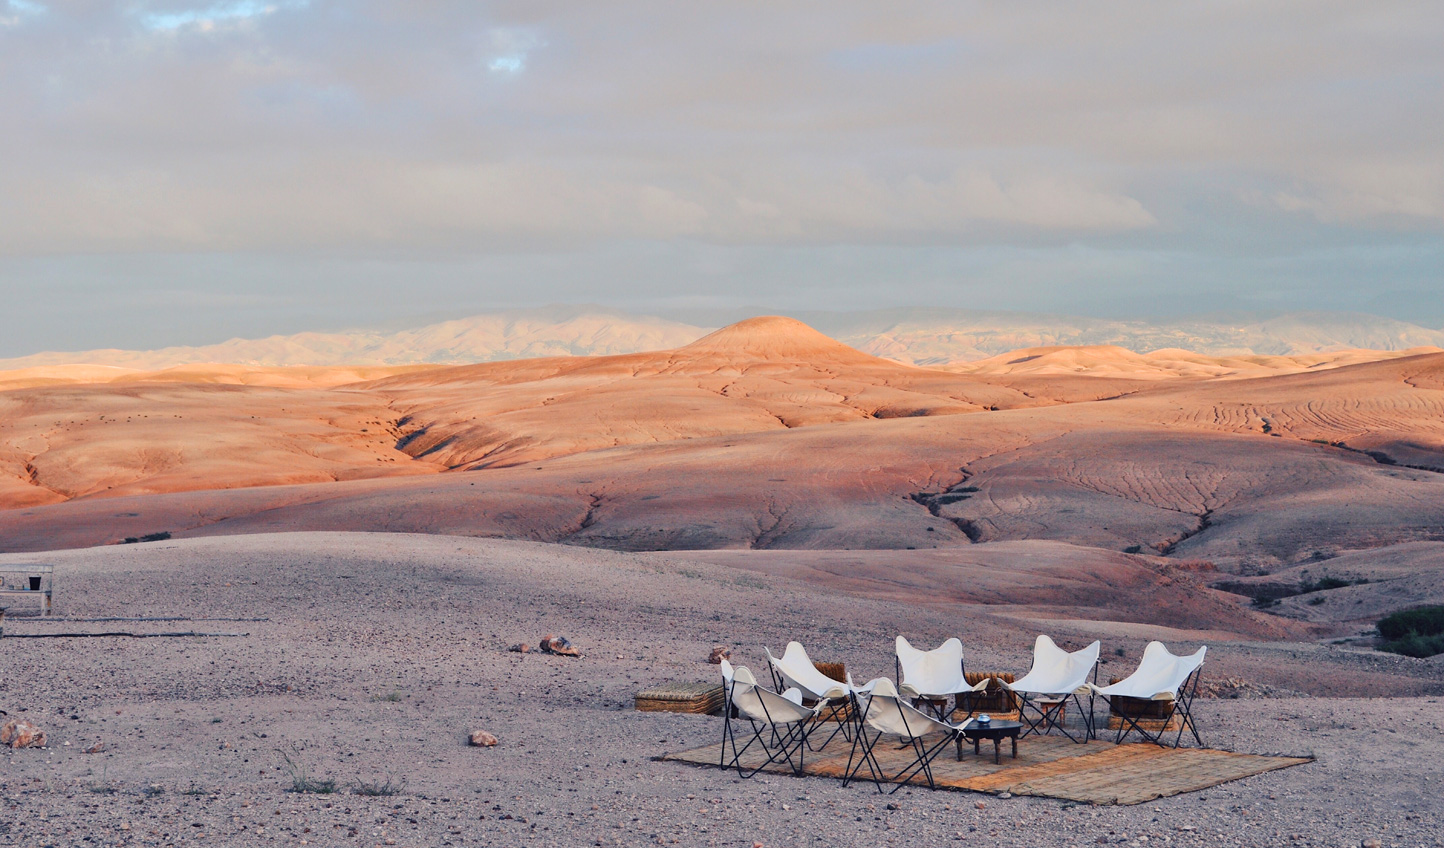 Head out to the solitude of the Agafay Desert